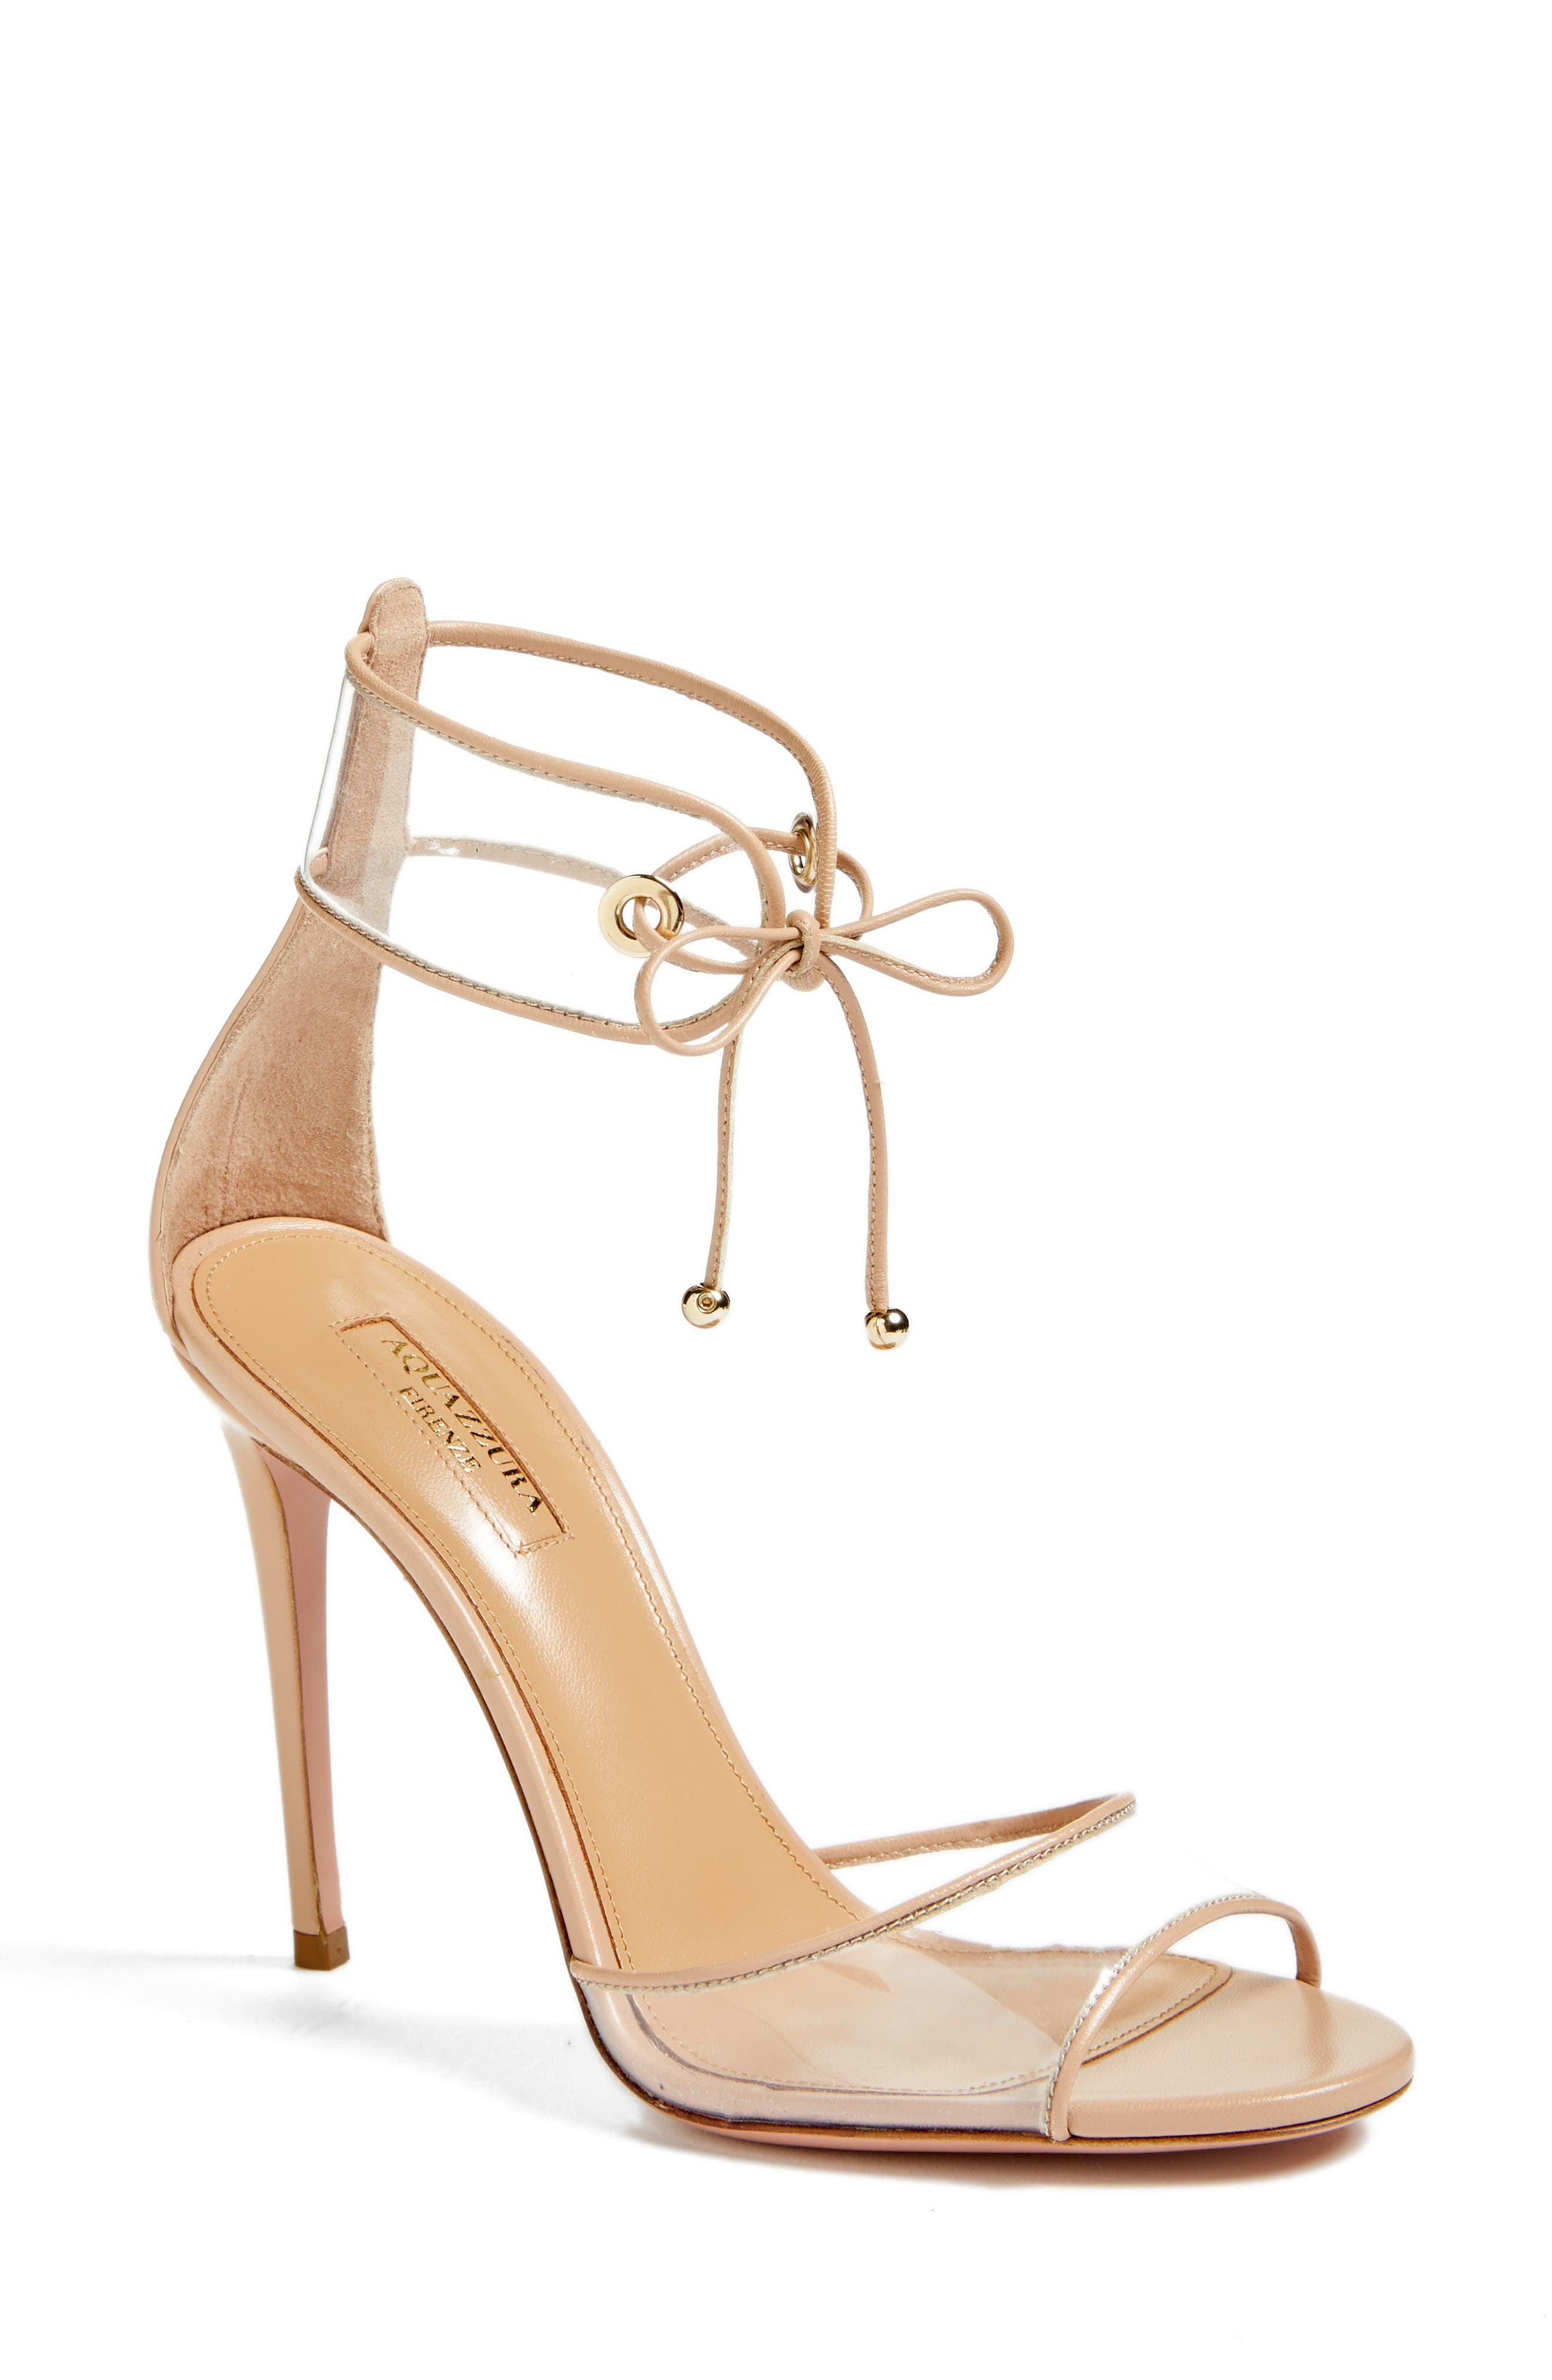 Alternate Image 1 Selected - Aquazzura Optic Clear Ankle Tie Sandal (Women)